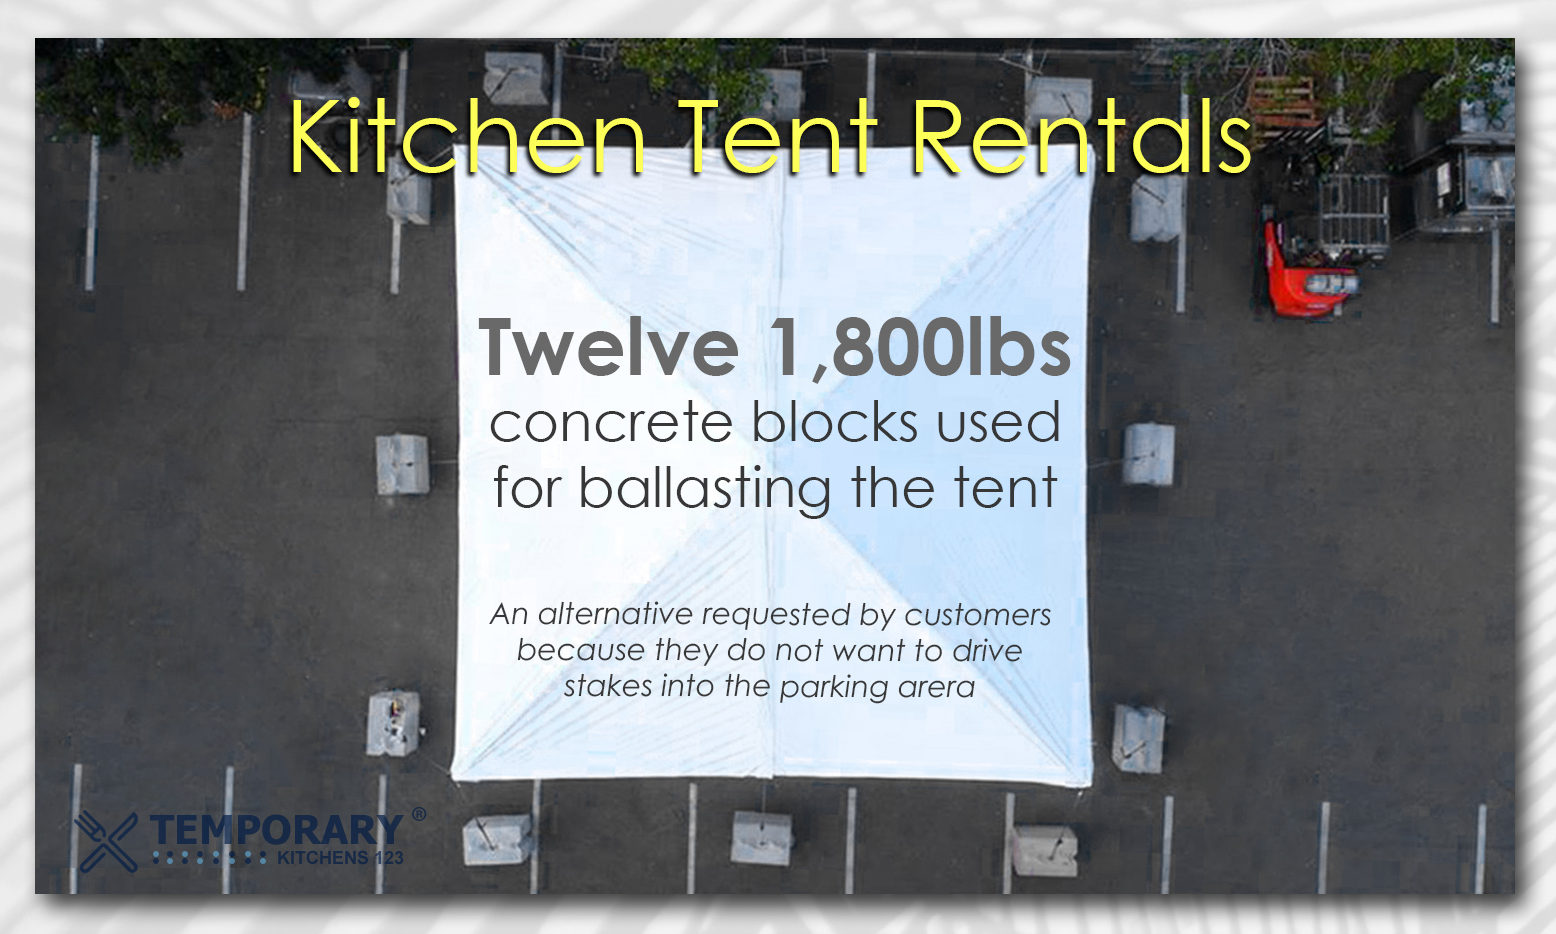 Kitchen tent rentals temporary kitchens 123 with ballasting blocks